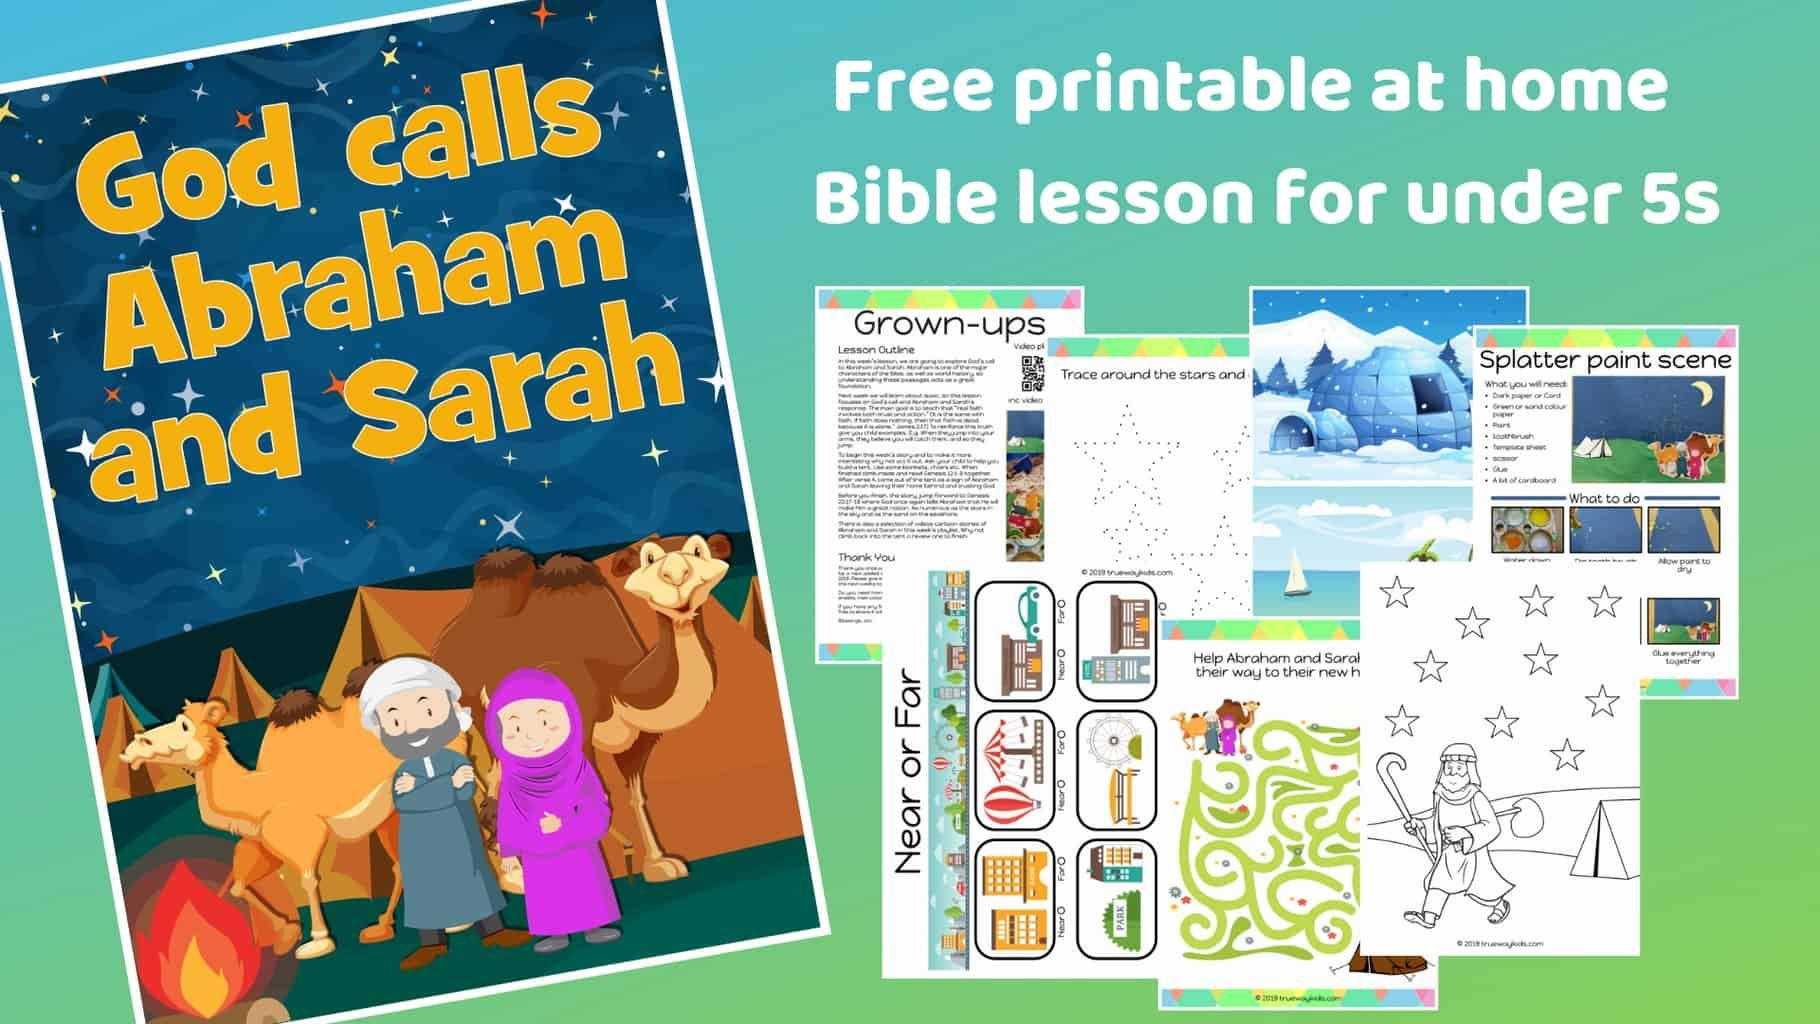 God Calls Abraham And Sarah Free Bible Lesson For Under